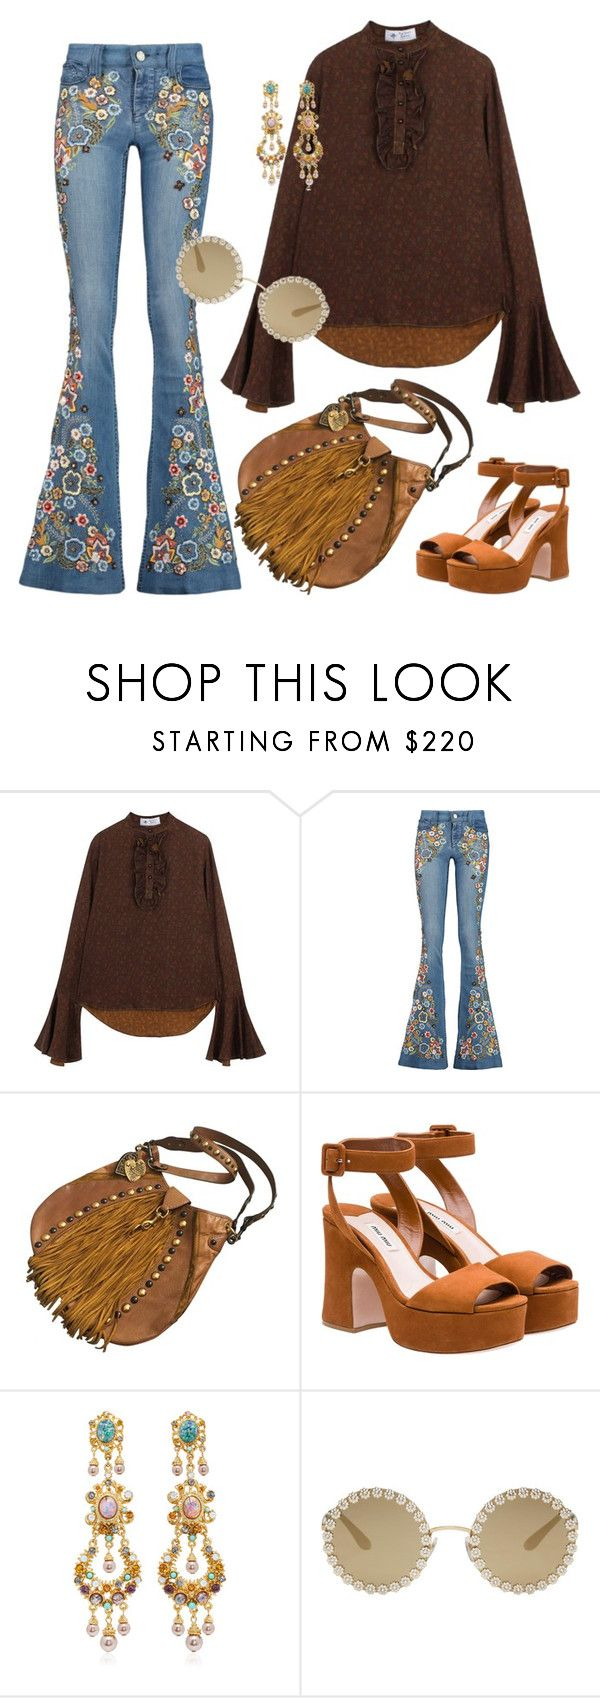 Boho by repriza on Polyvore featuring мода, The Bee's Sneeze, Alice + Olivia, Miu Miu, Gucci, Ben-Amun and Dolce&Gabbana